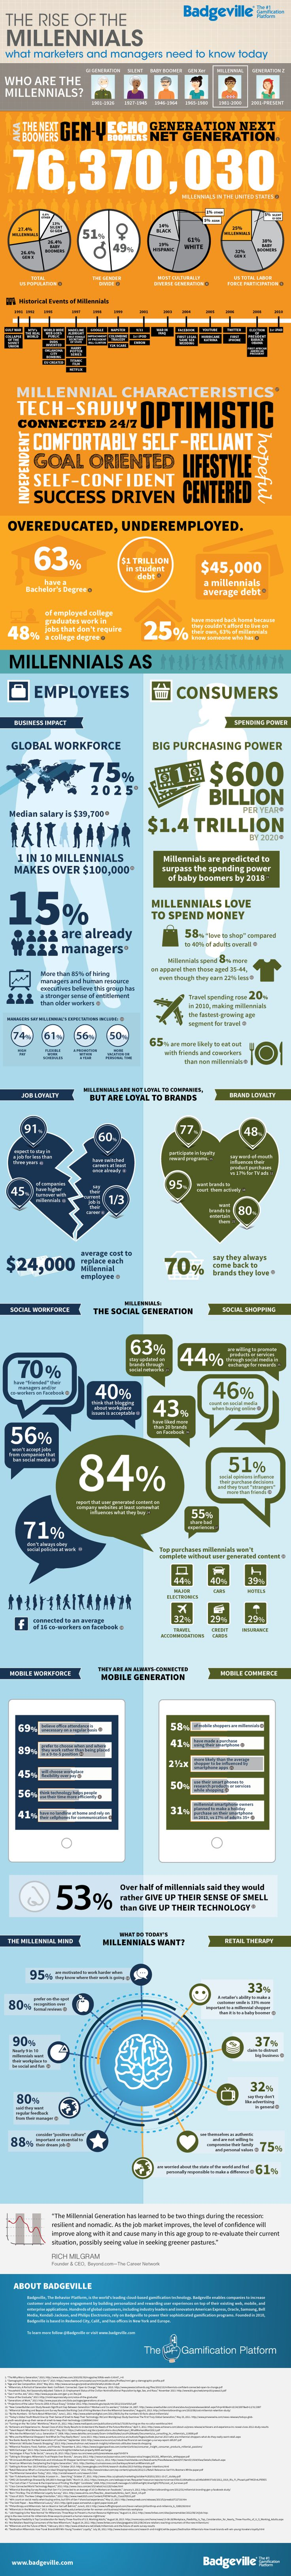 Social Media And The Rise Of The Millennials [INFOGRAPHIC]